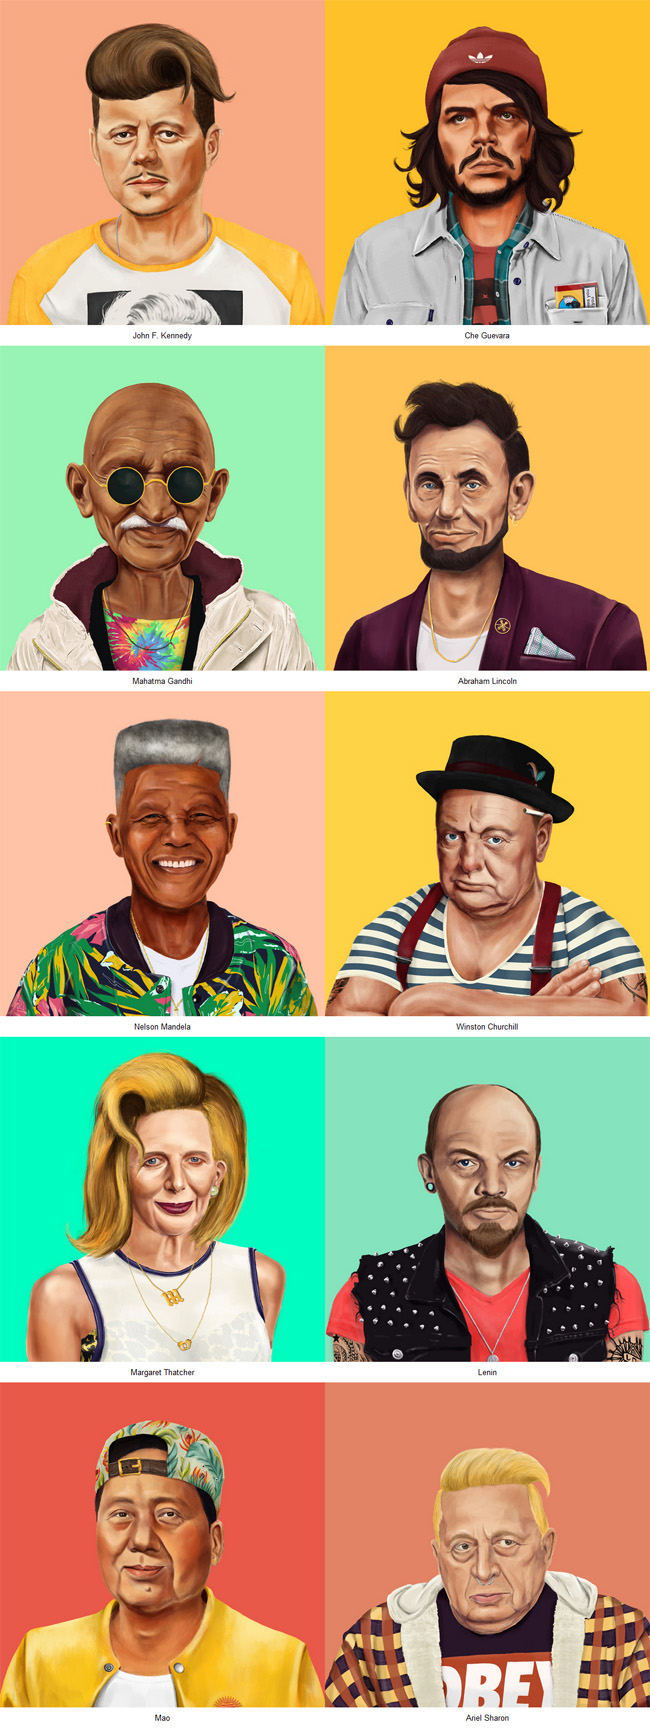 World Leaders as hipsters by Amit Shimoni